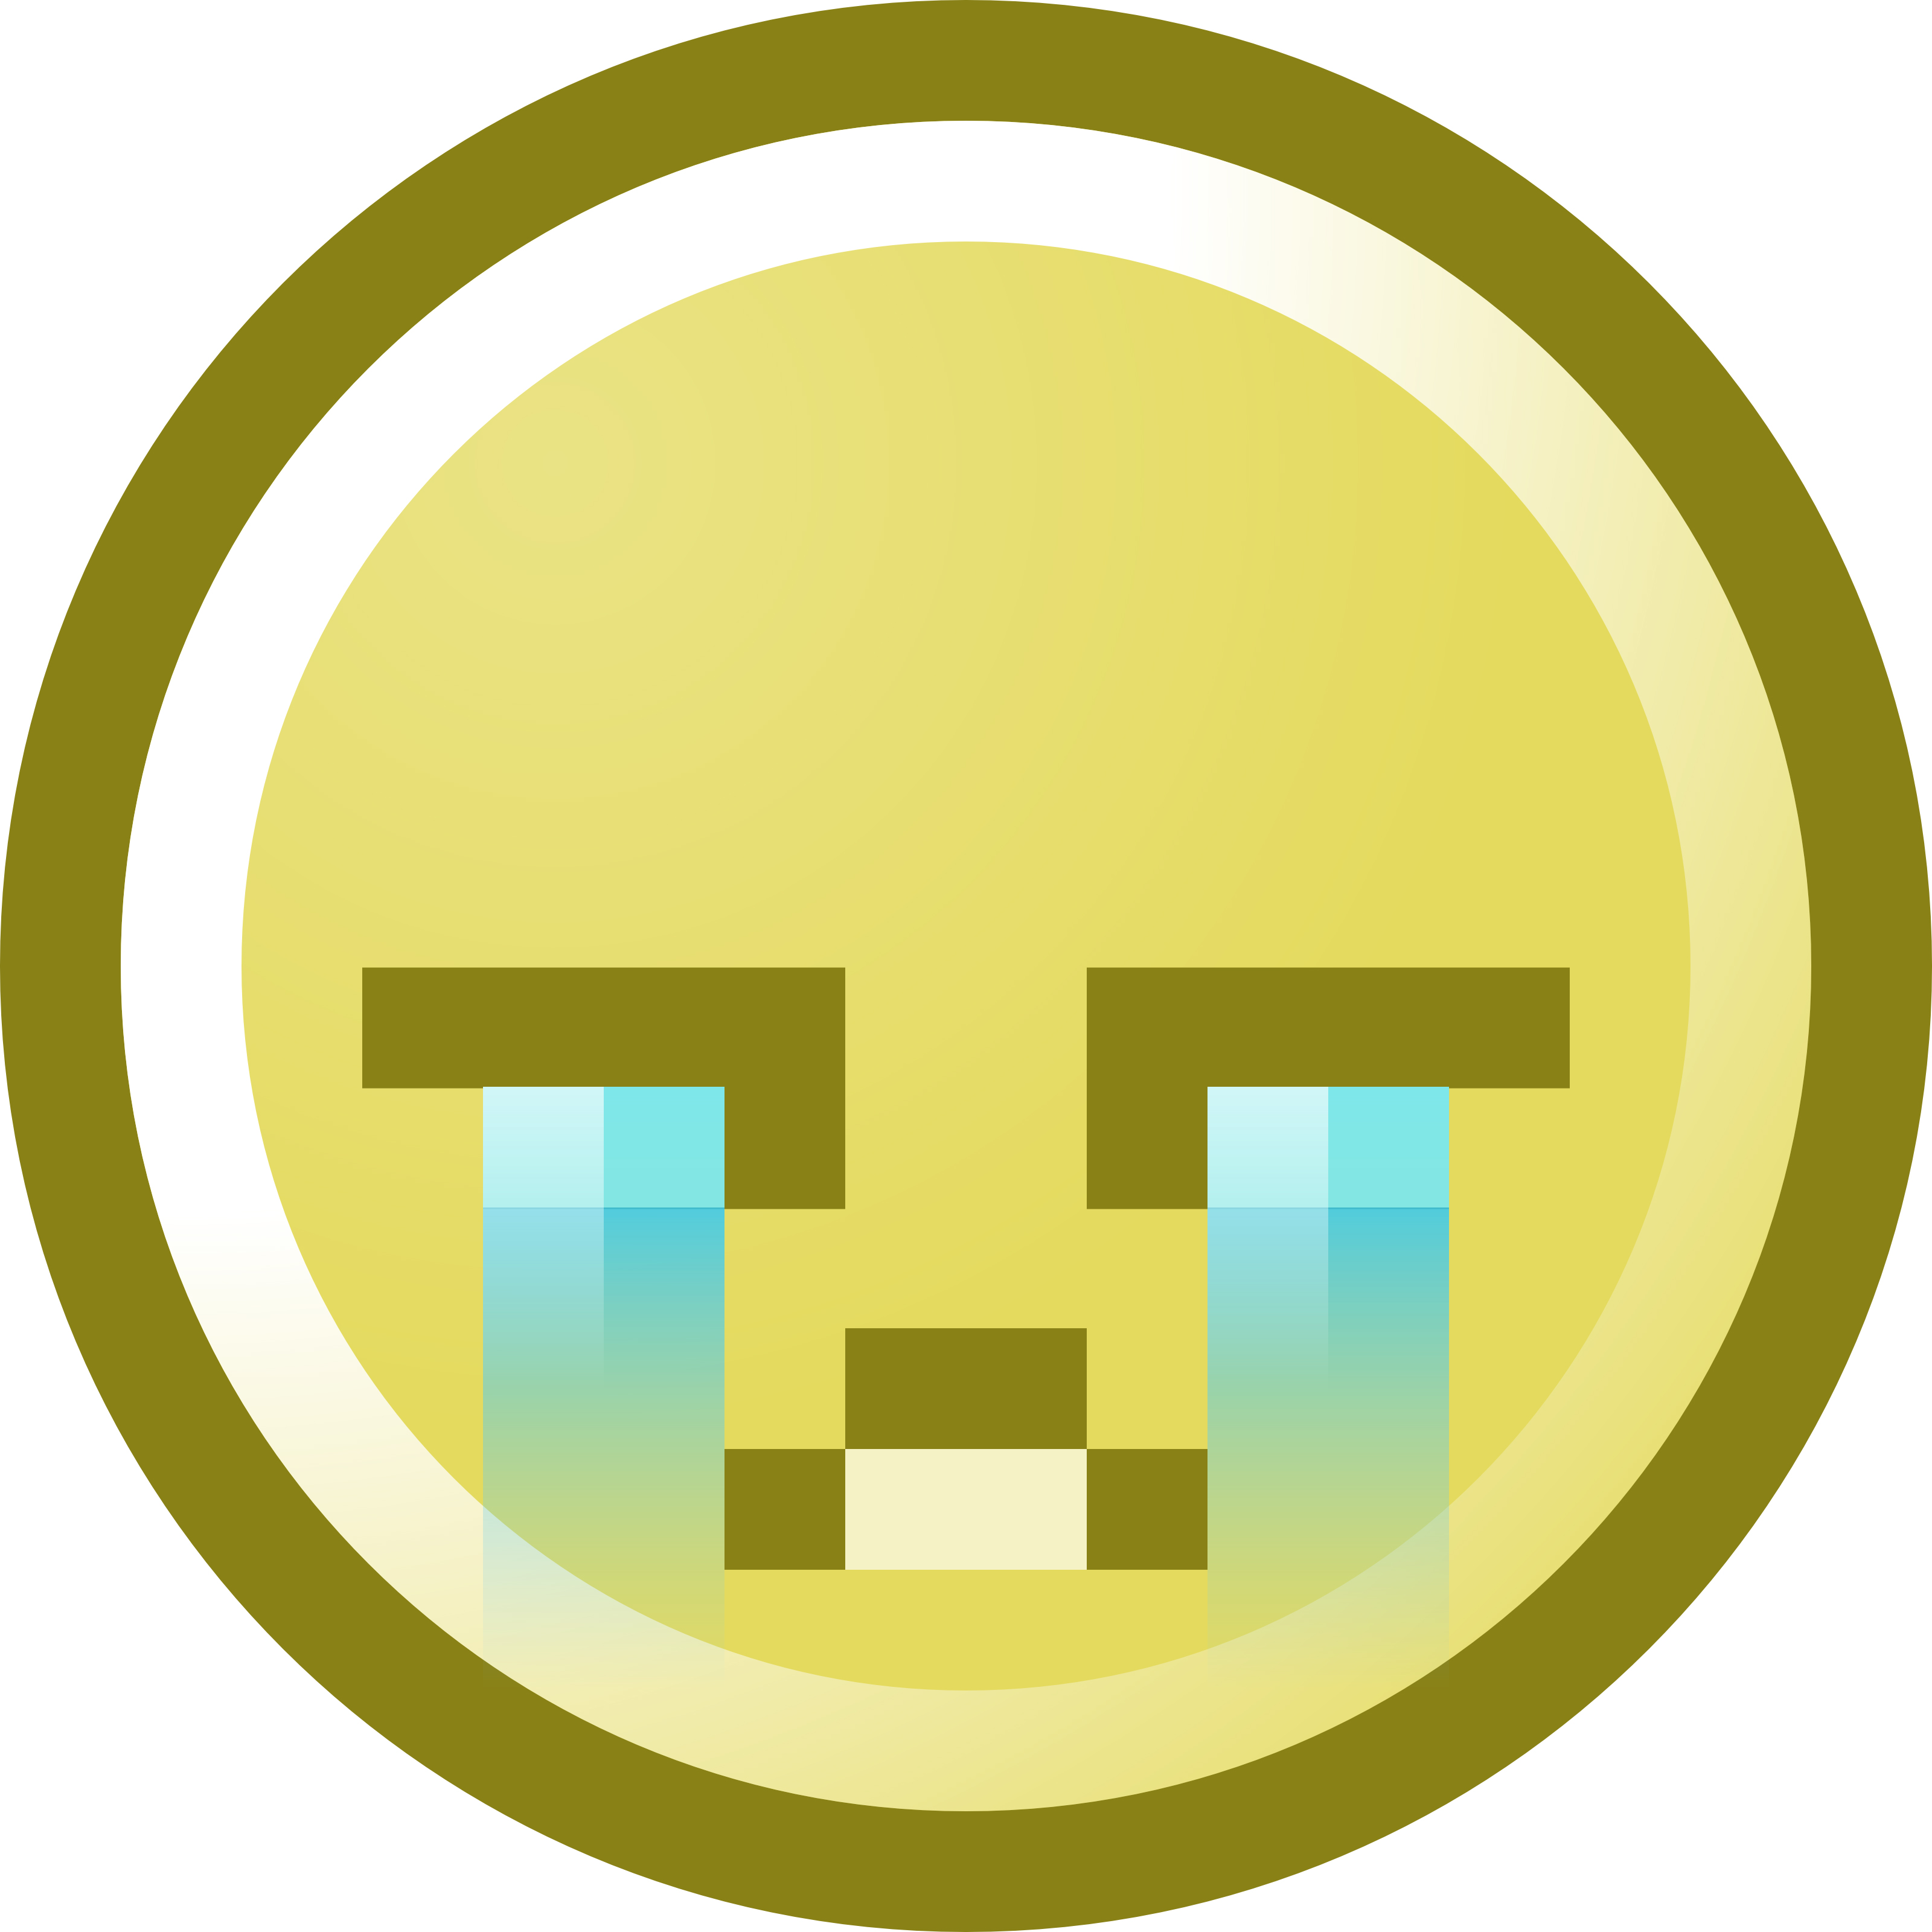 3200x3200 Free Sad Crying Face, Hanslodge Clip Art Collection